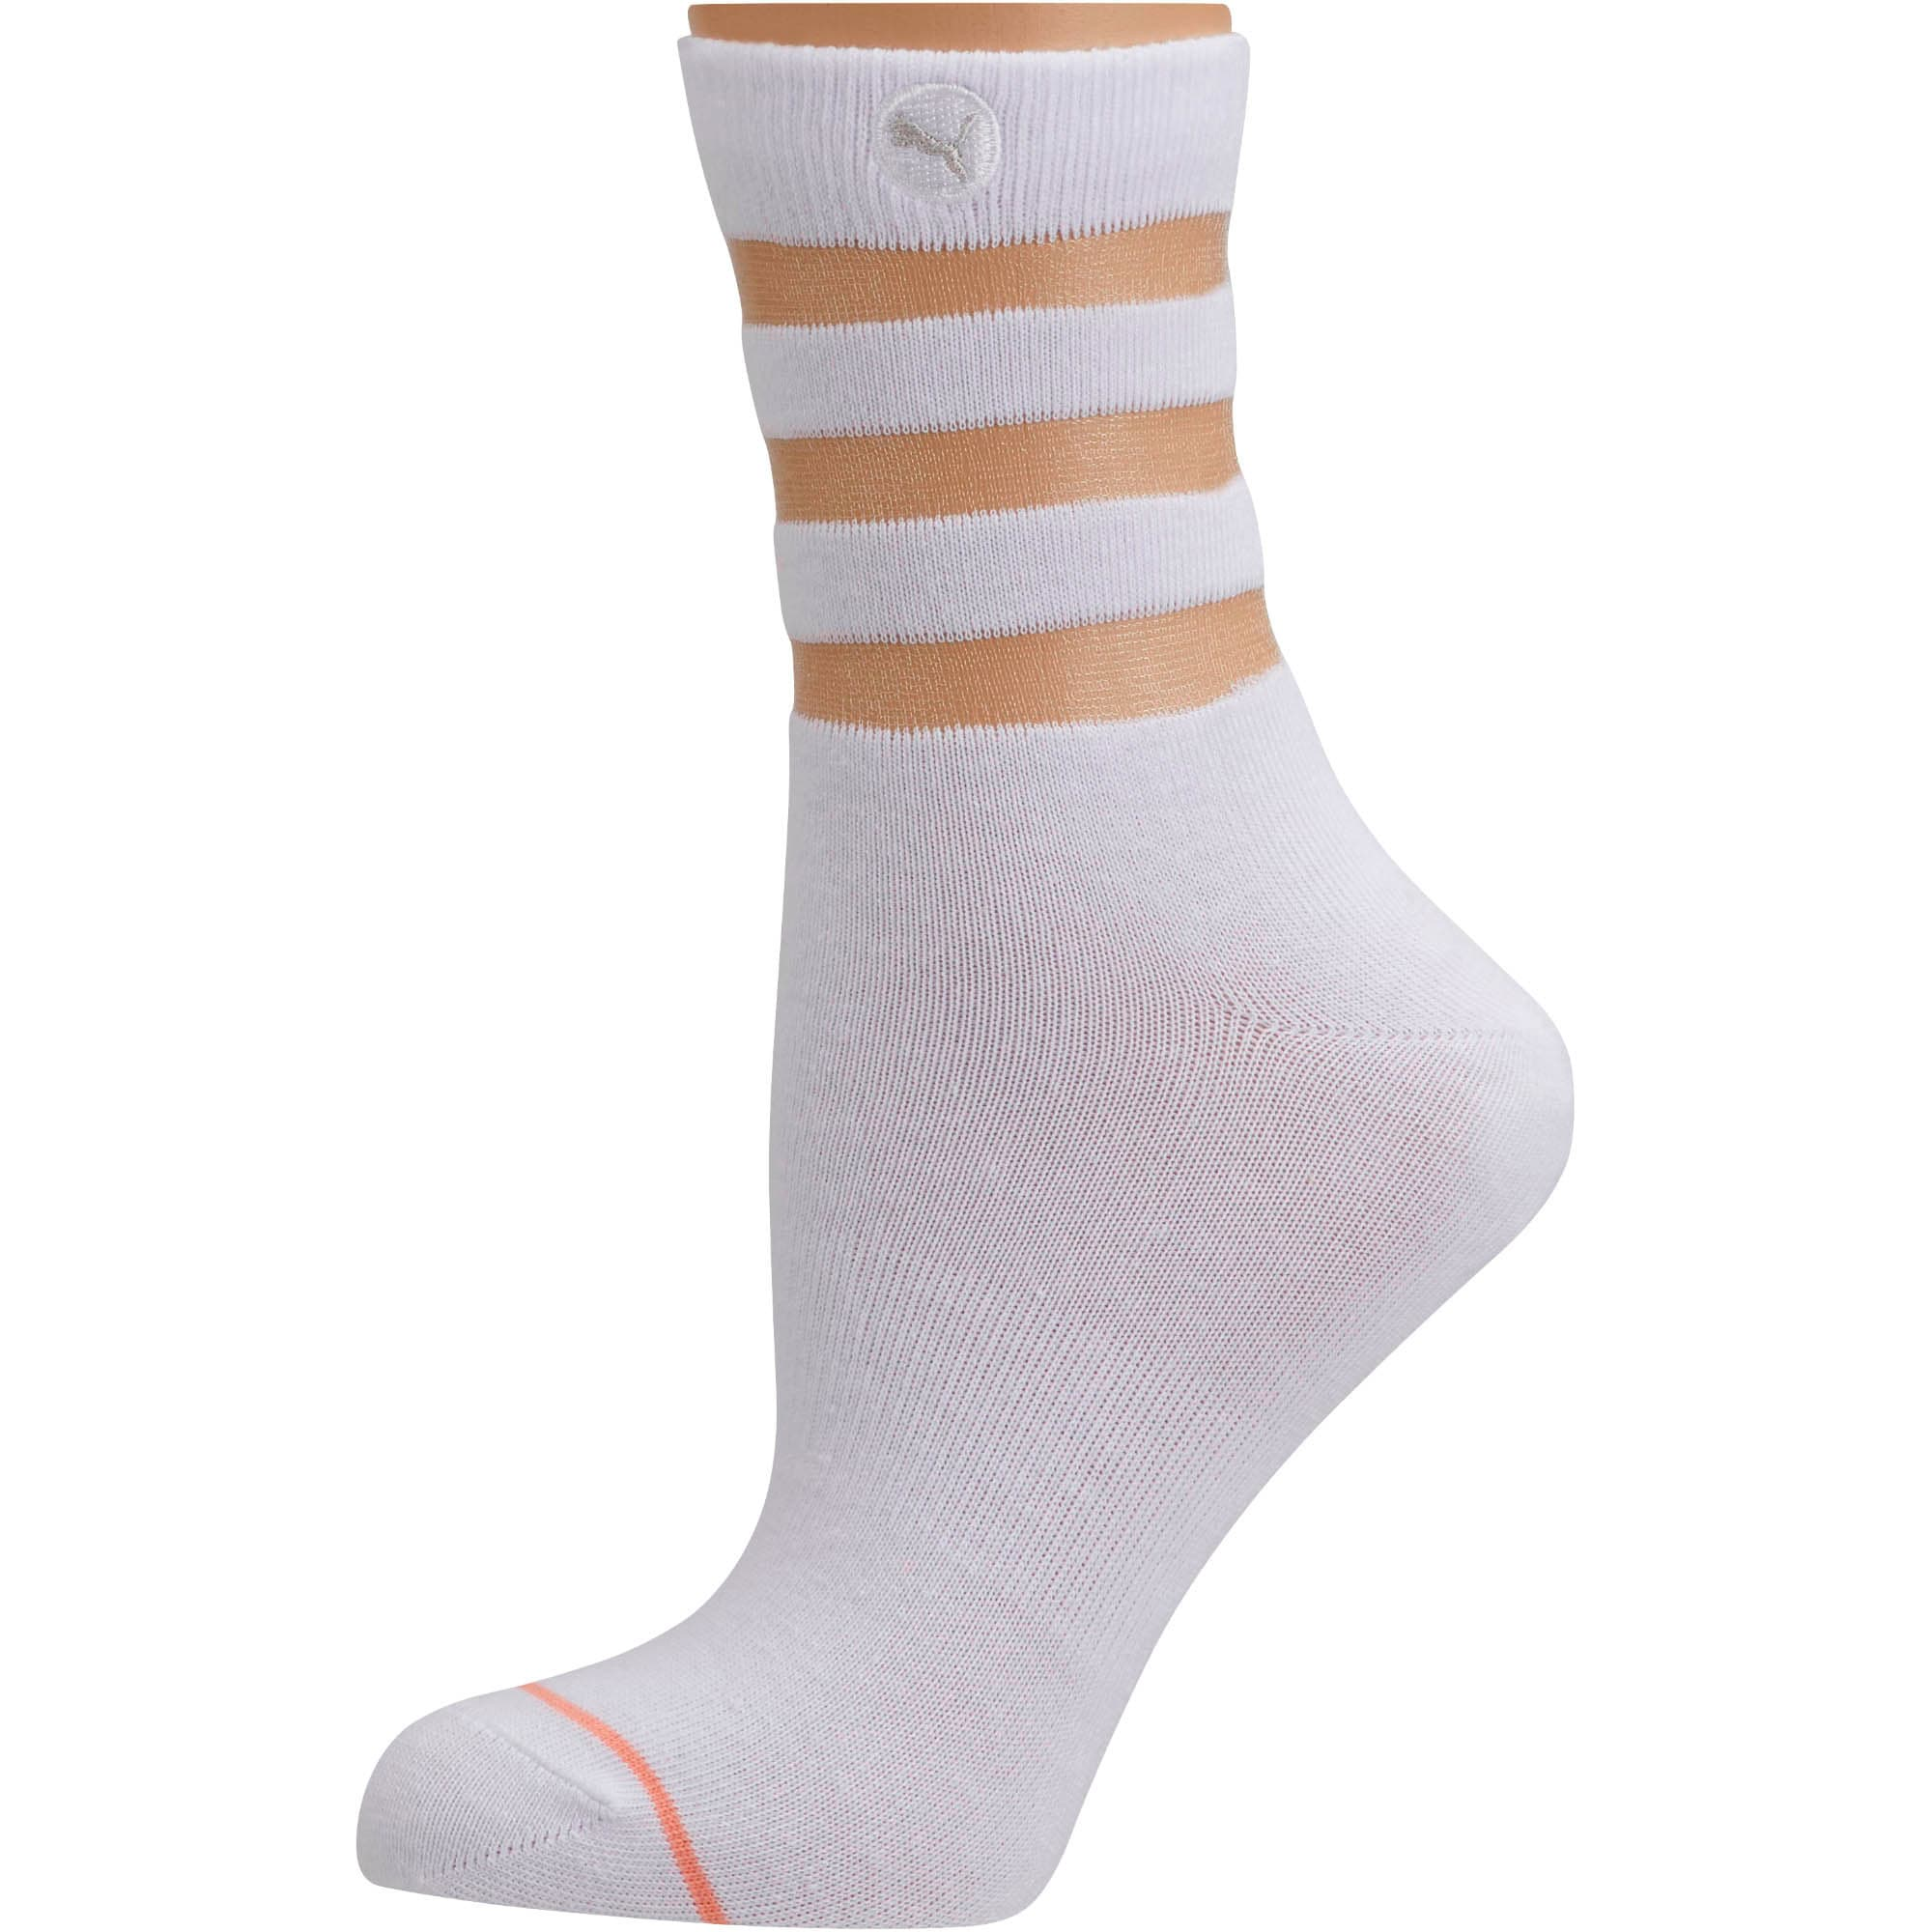 Thumbnail 1 of Women's Sheer Tube Socks [1 Pair], WHITE / CORAL, medium